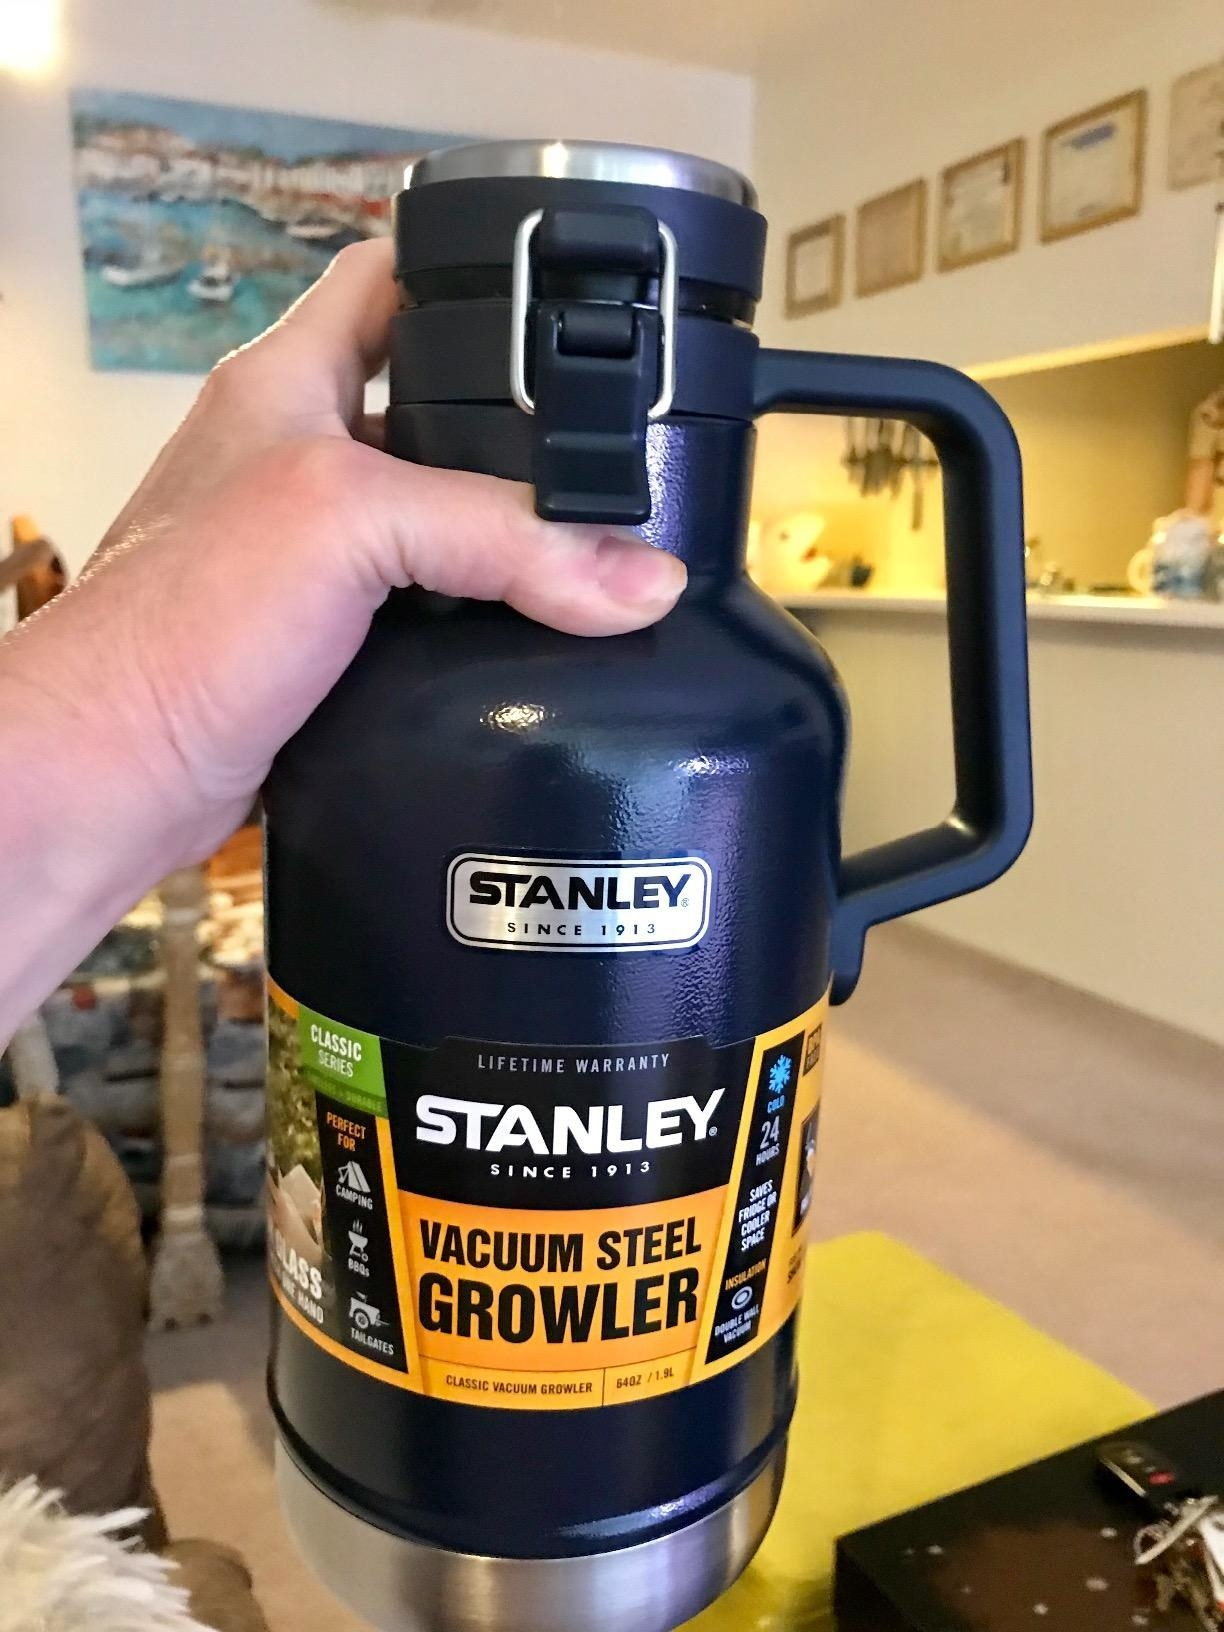 A hand holding a dark blue Stanley vacuum steel growler